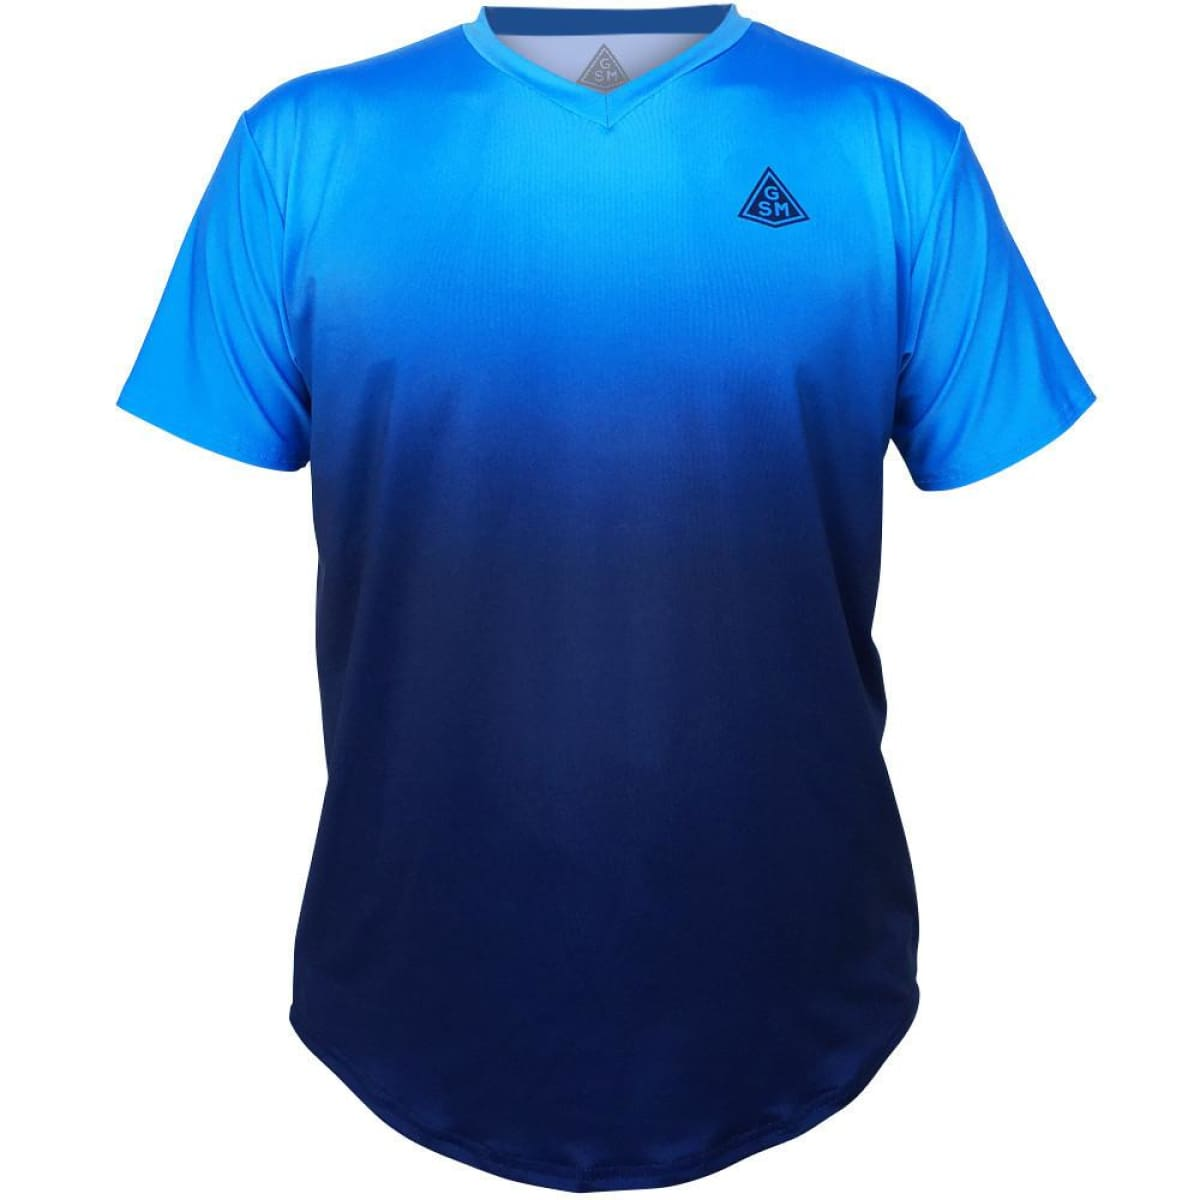 Endless GSM Tennis Shirt - LightBlue -Navy / Youth X-Small / No - Tennis Shirts